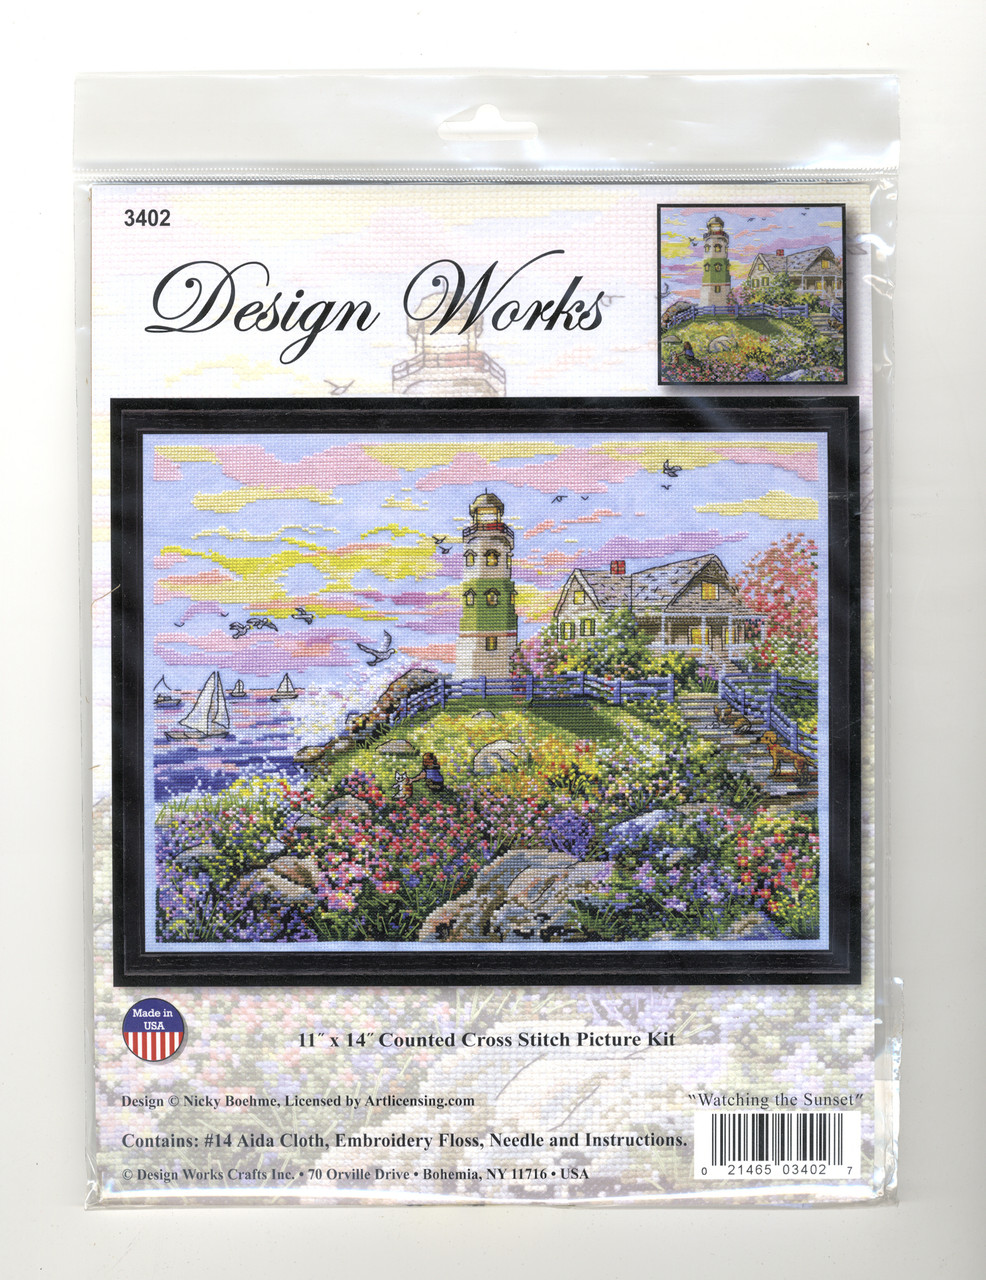 Design Works - Watching the Sunset